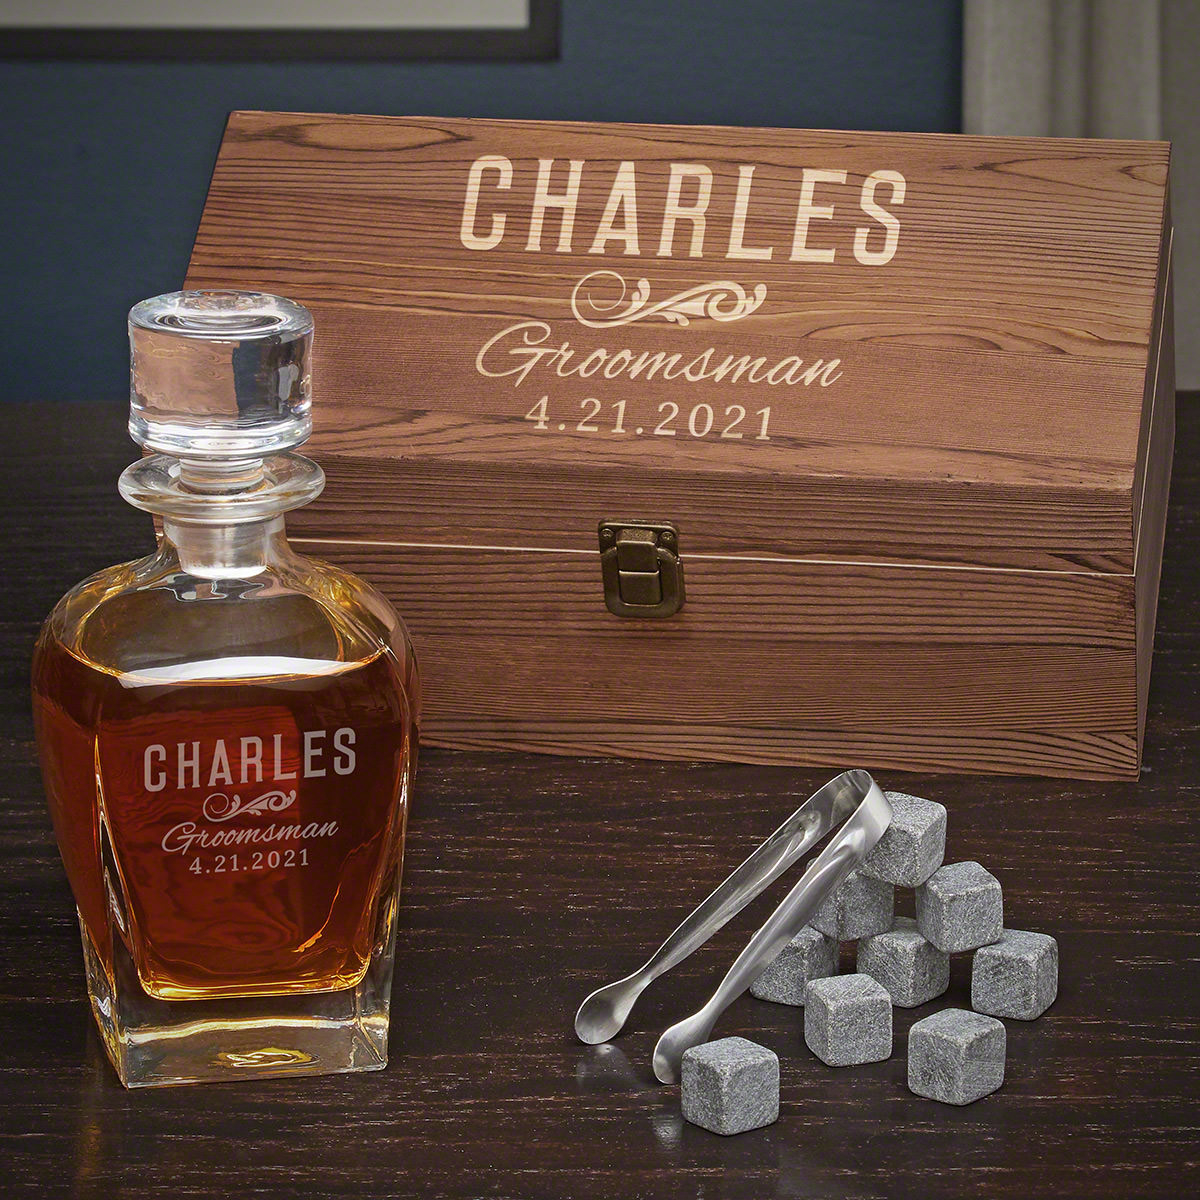 Classic-Groomsman-Draper-Decanter-Personalized-Whiskey-Gift-for-Best-Man